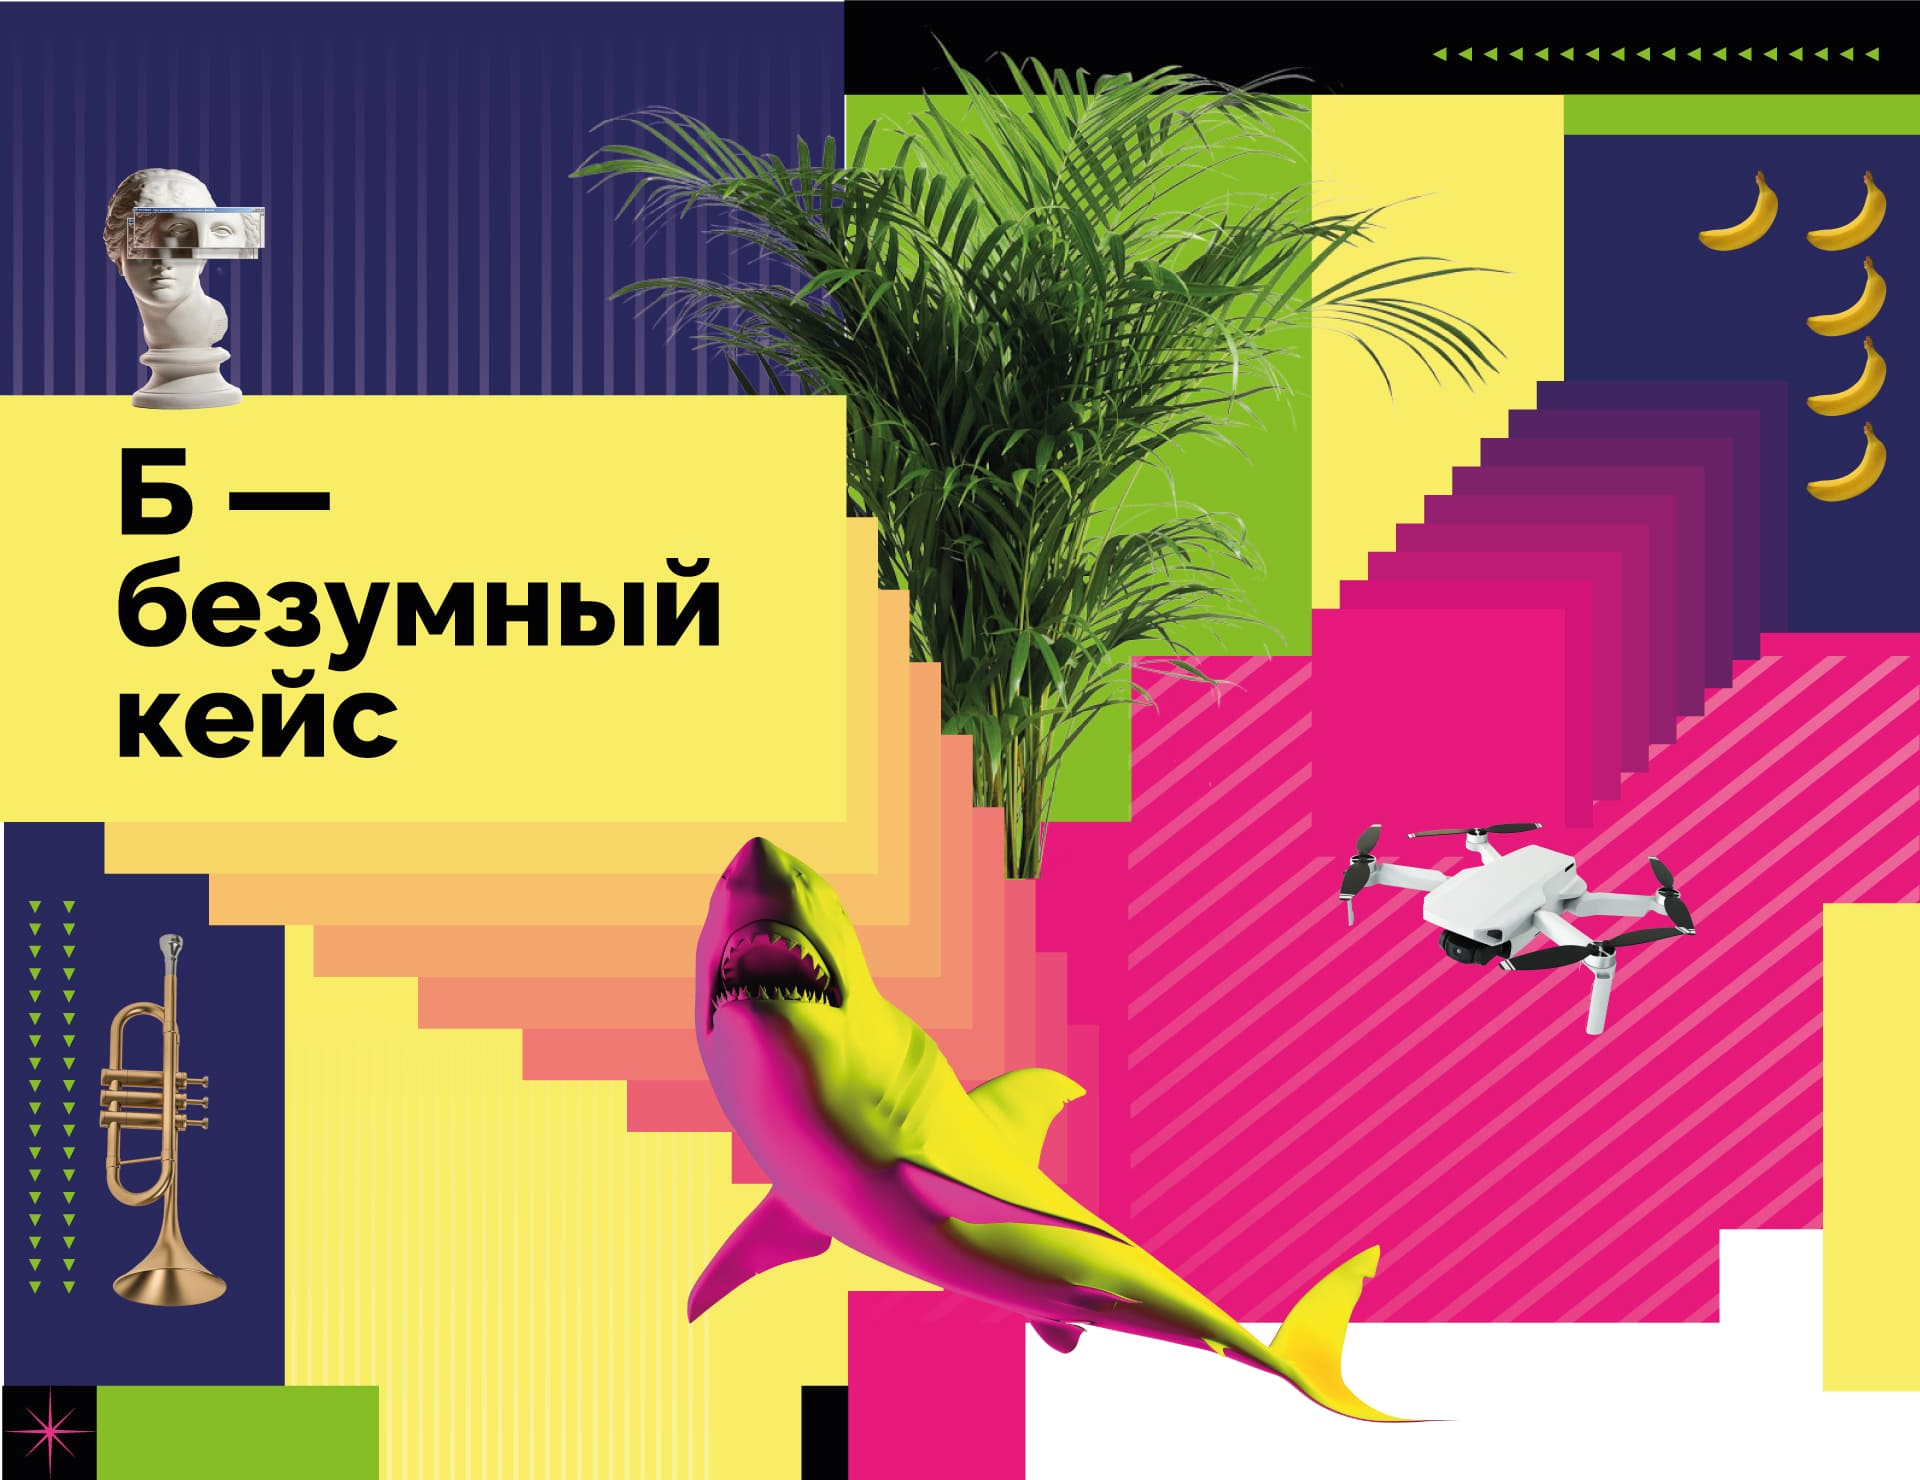 Crazy Identity for a Chain of Trade-in Stores in Russia